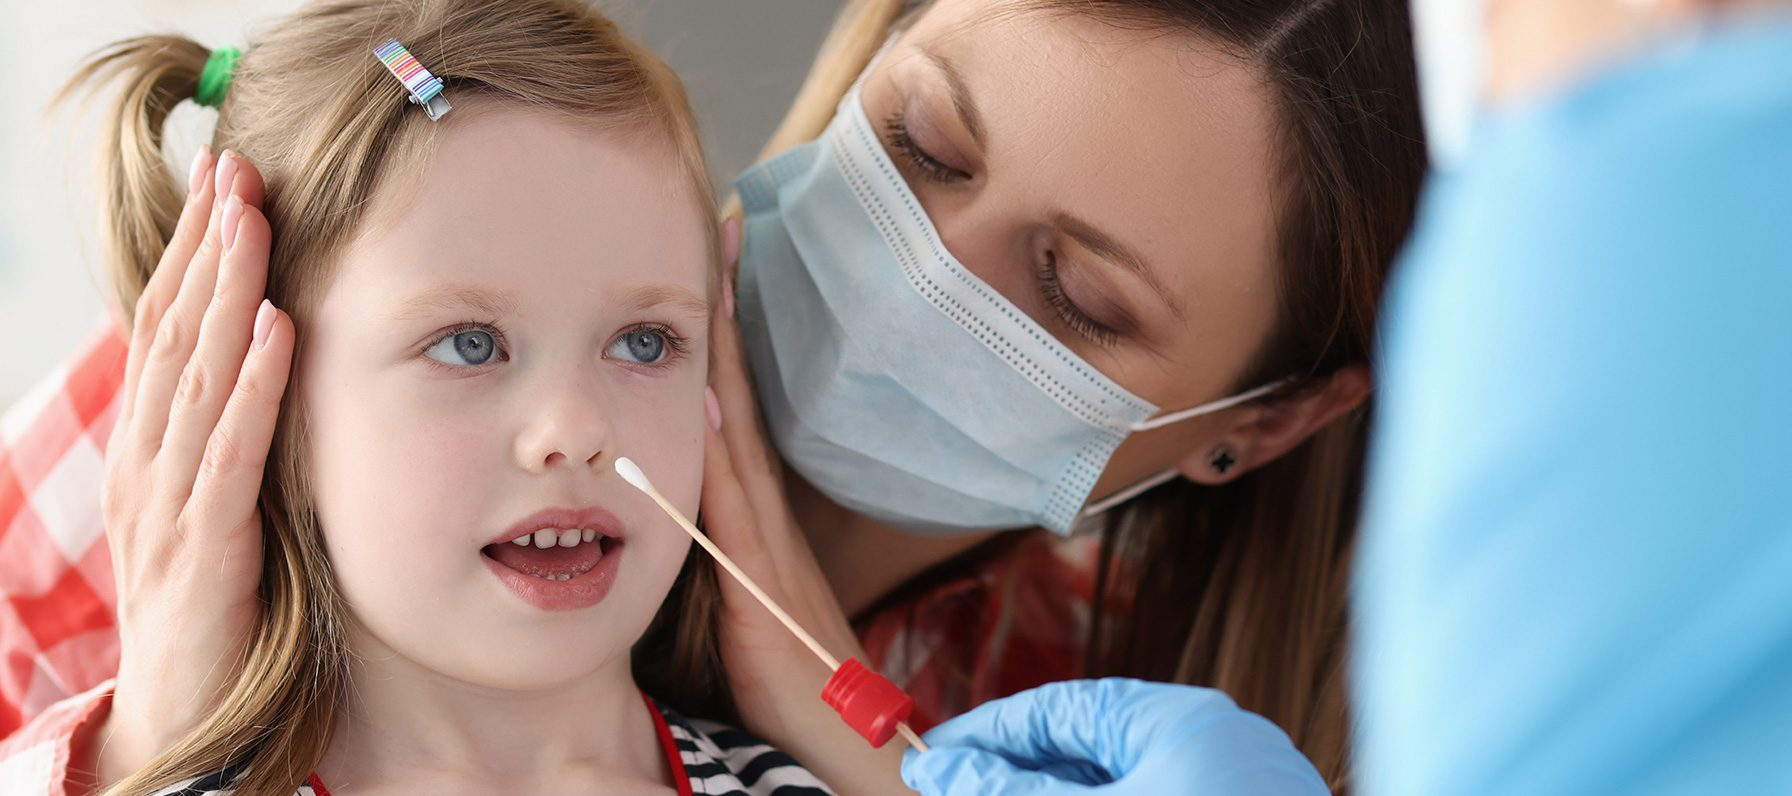 Child Tested for COVID-19 with Swab Nasal Swab